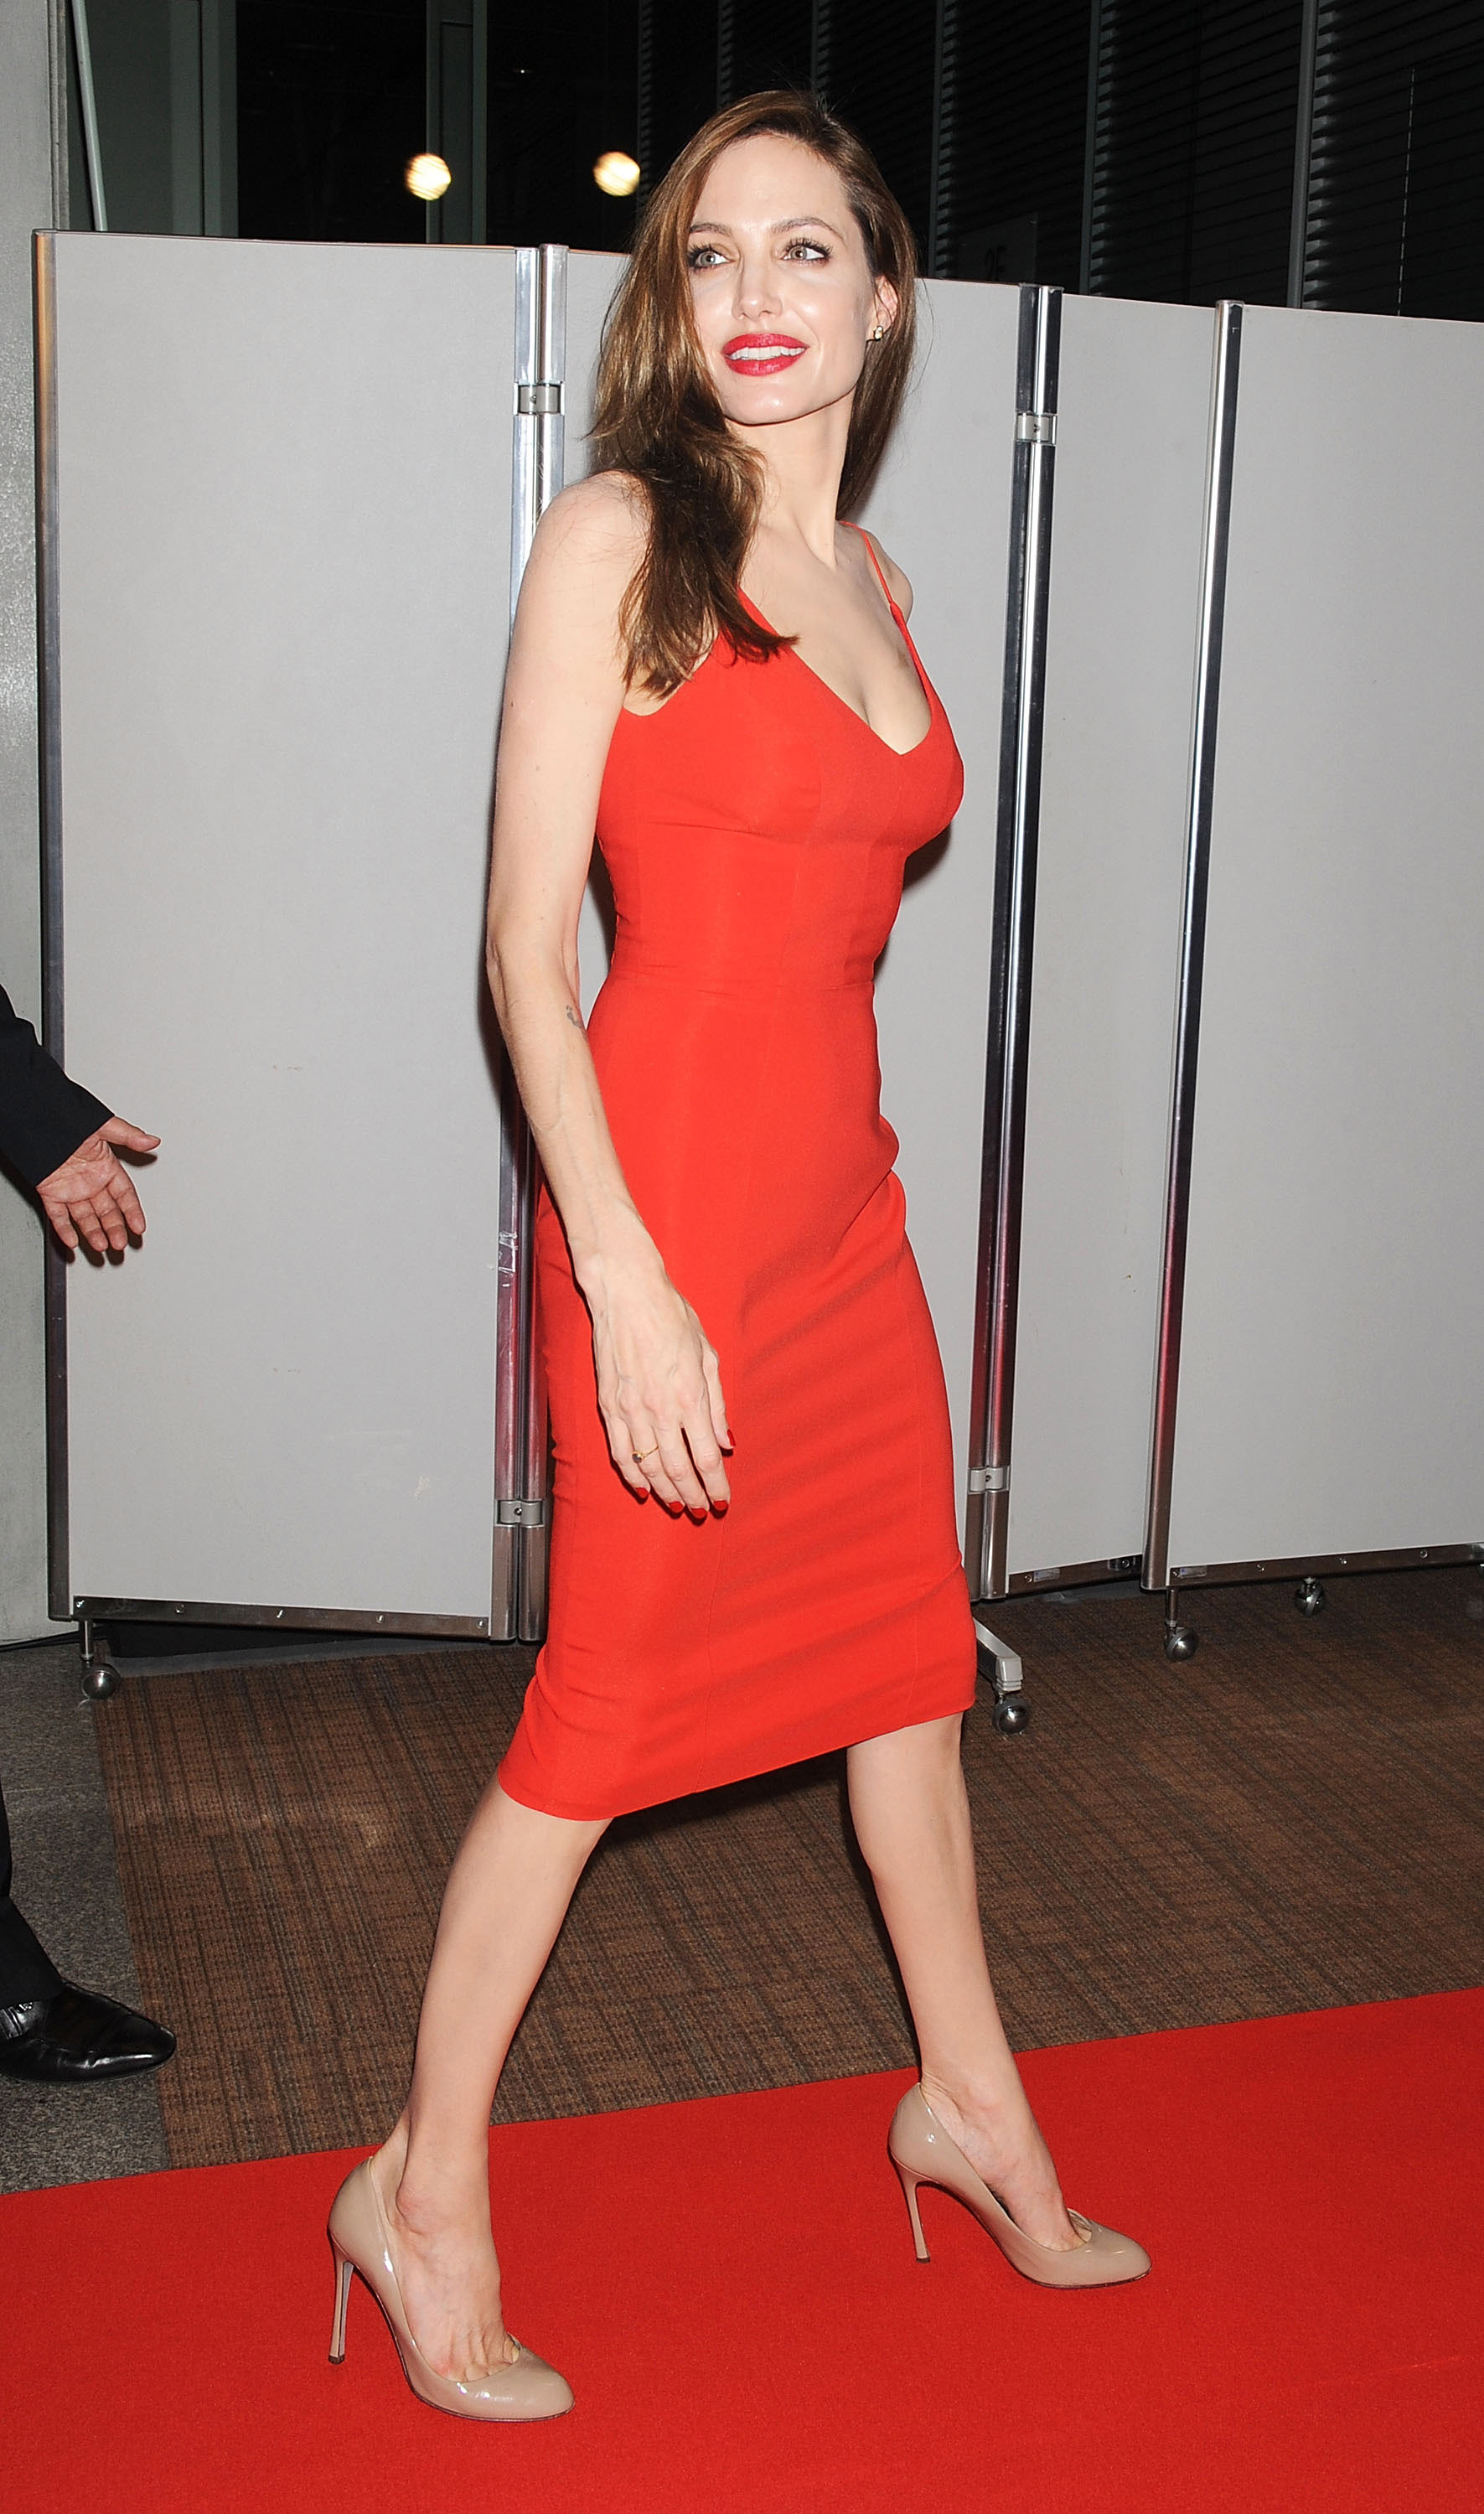 Angelina Jolie - Red Dress Candids at Moneyball Premiere in Tokyo ...